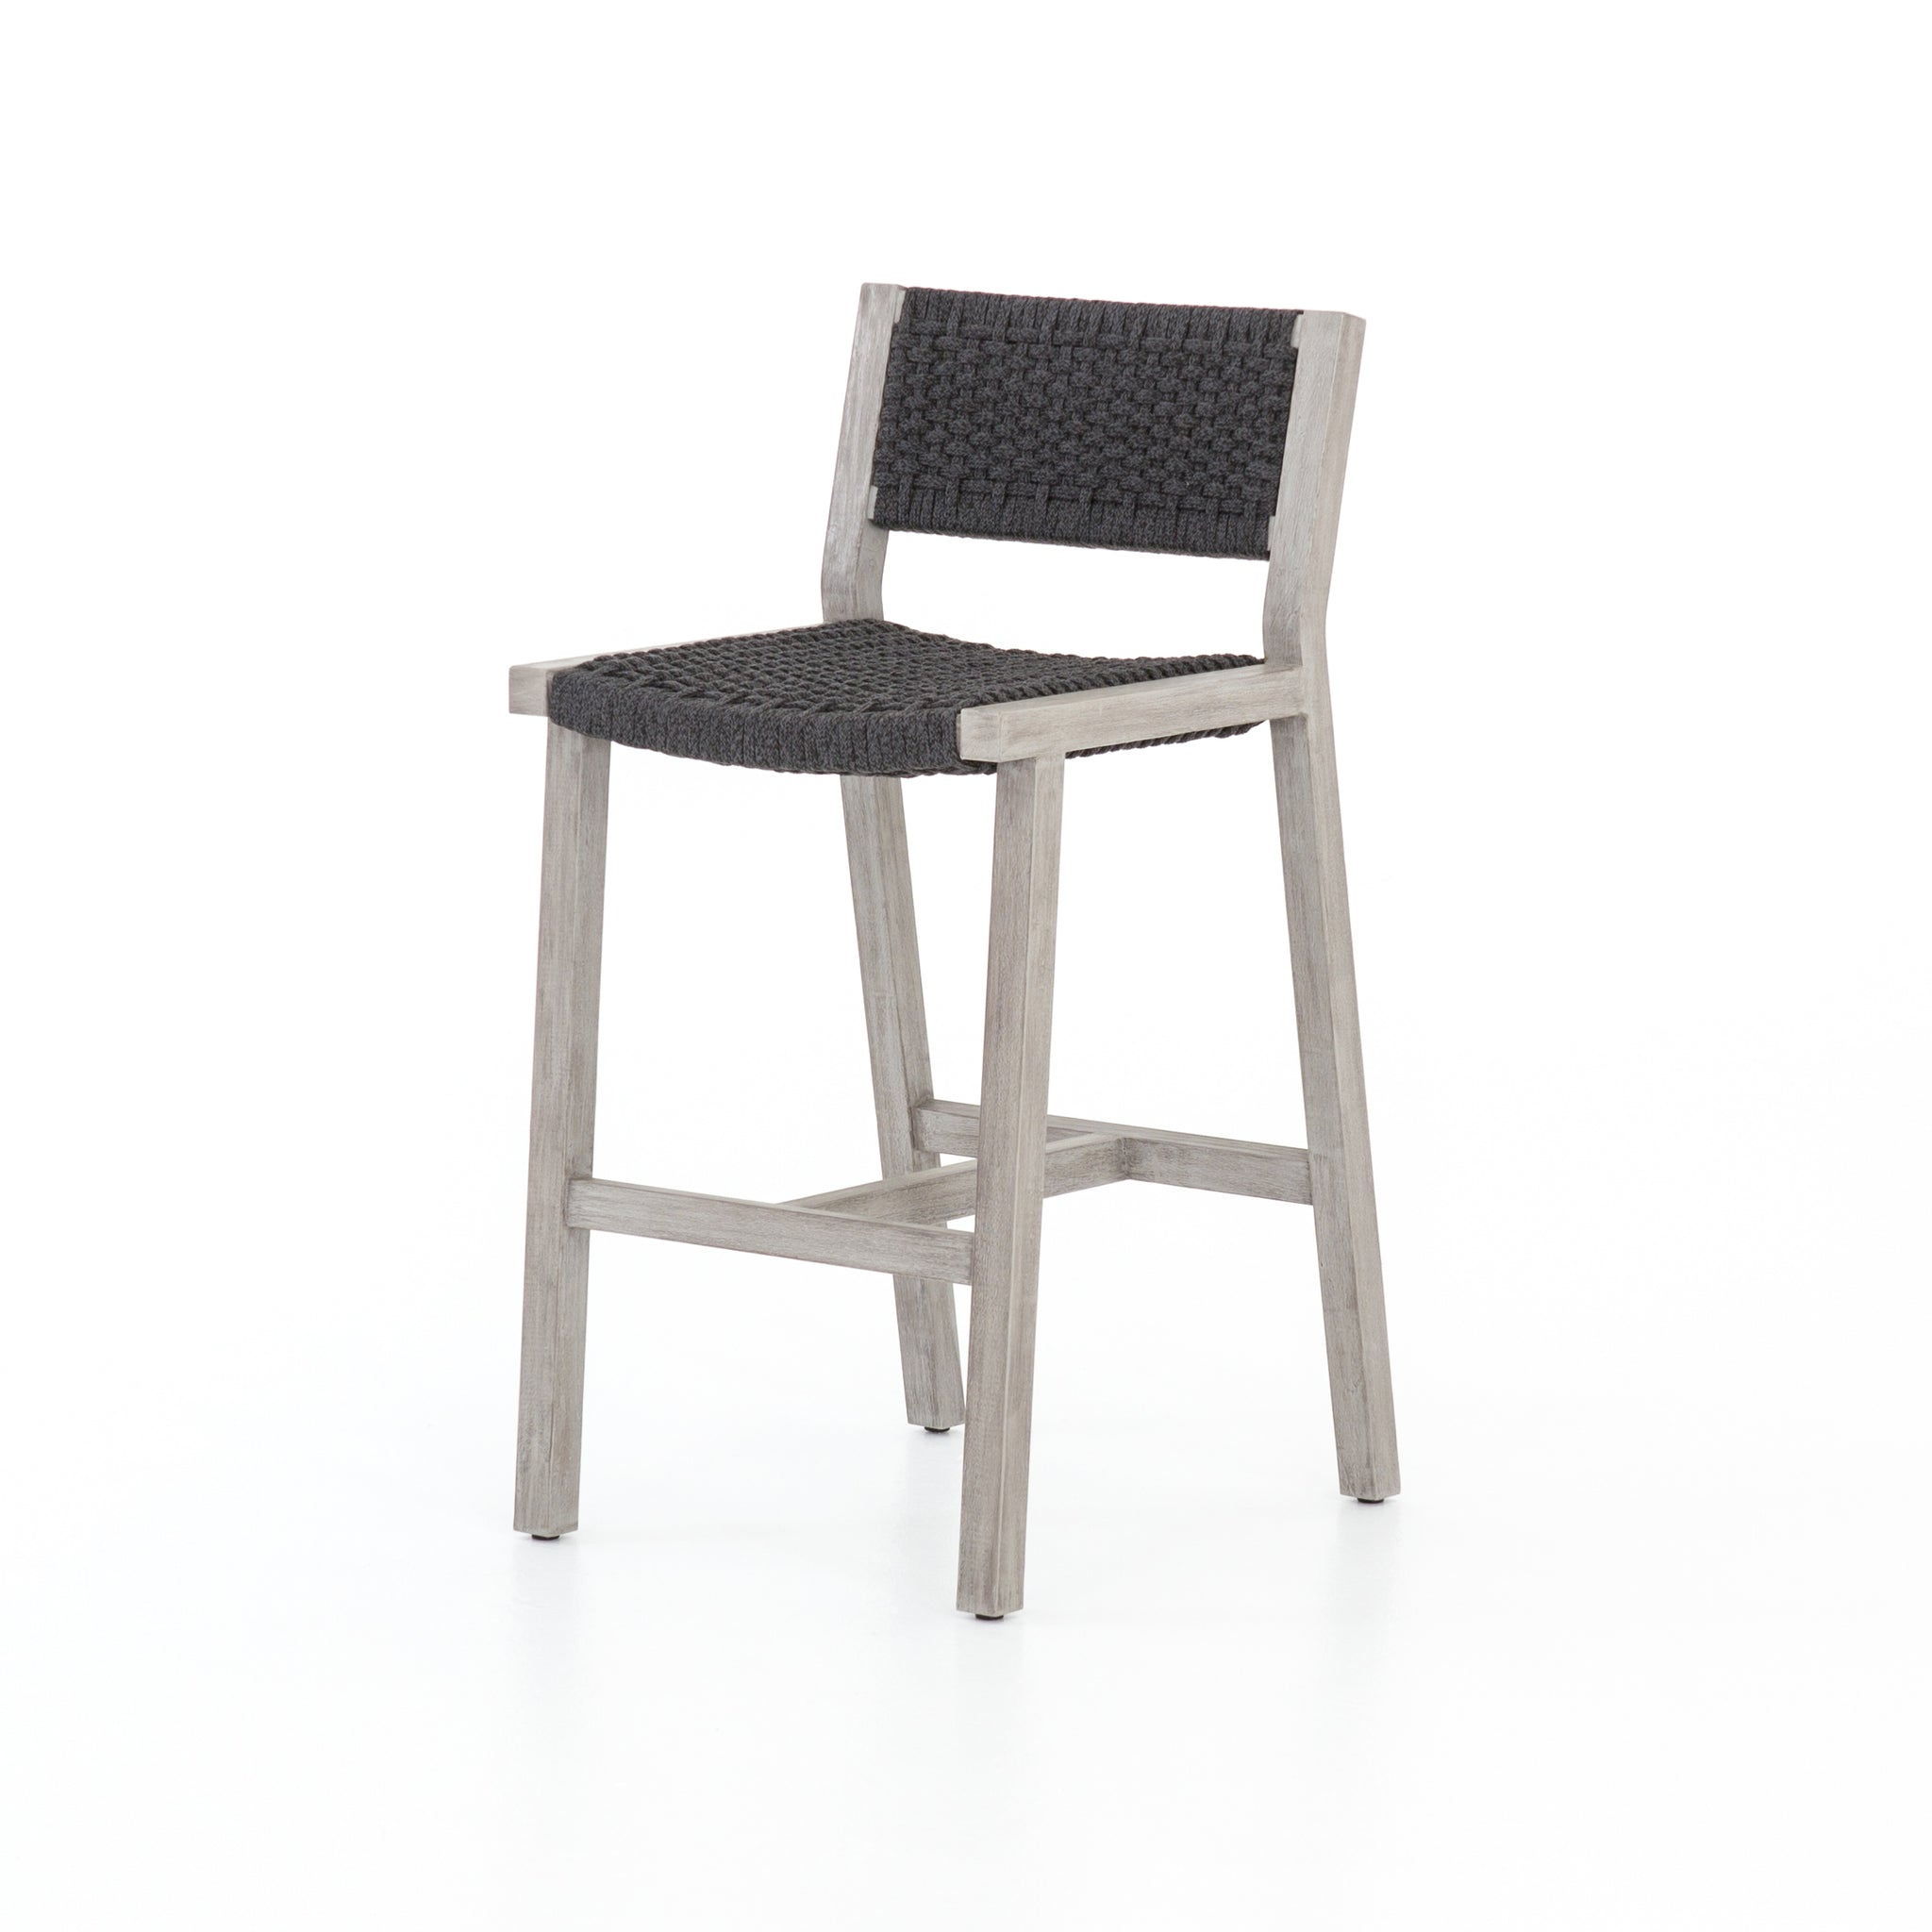 Leonardo Outdoor Teak Barstool - Weathered Grey